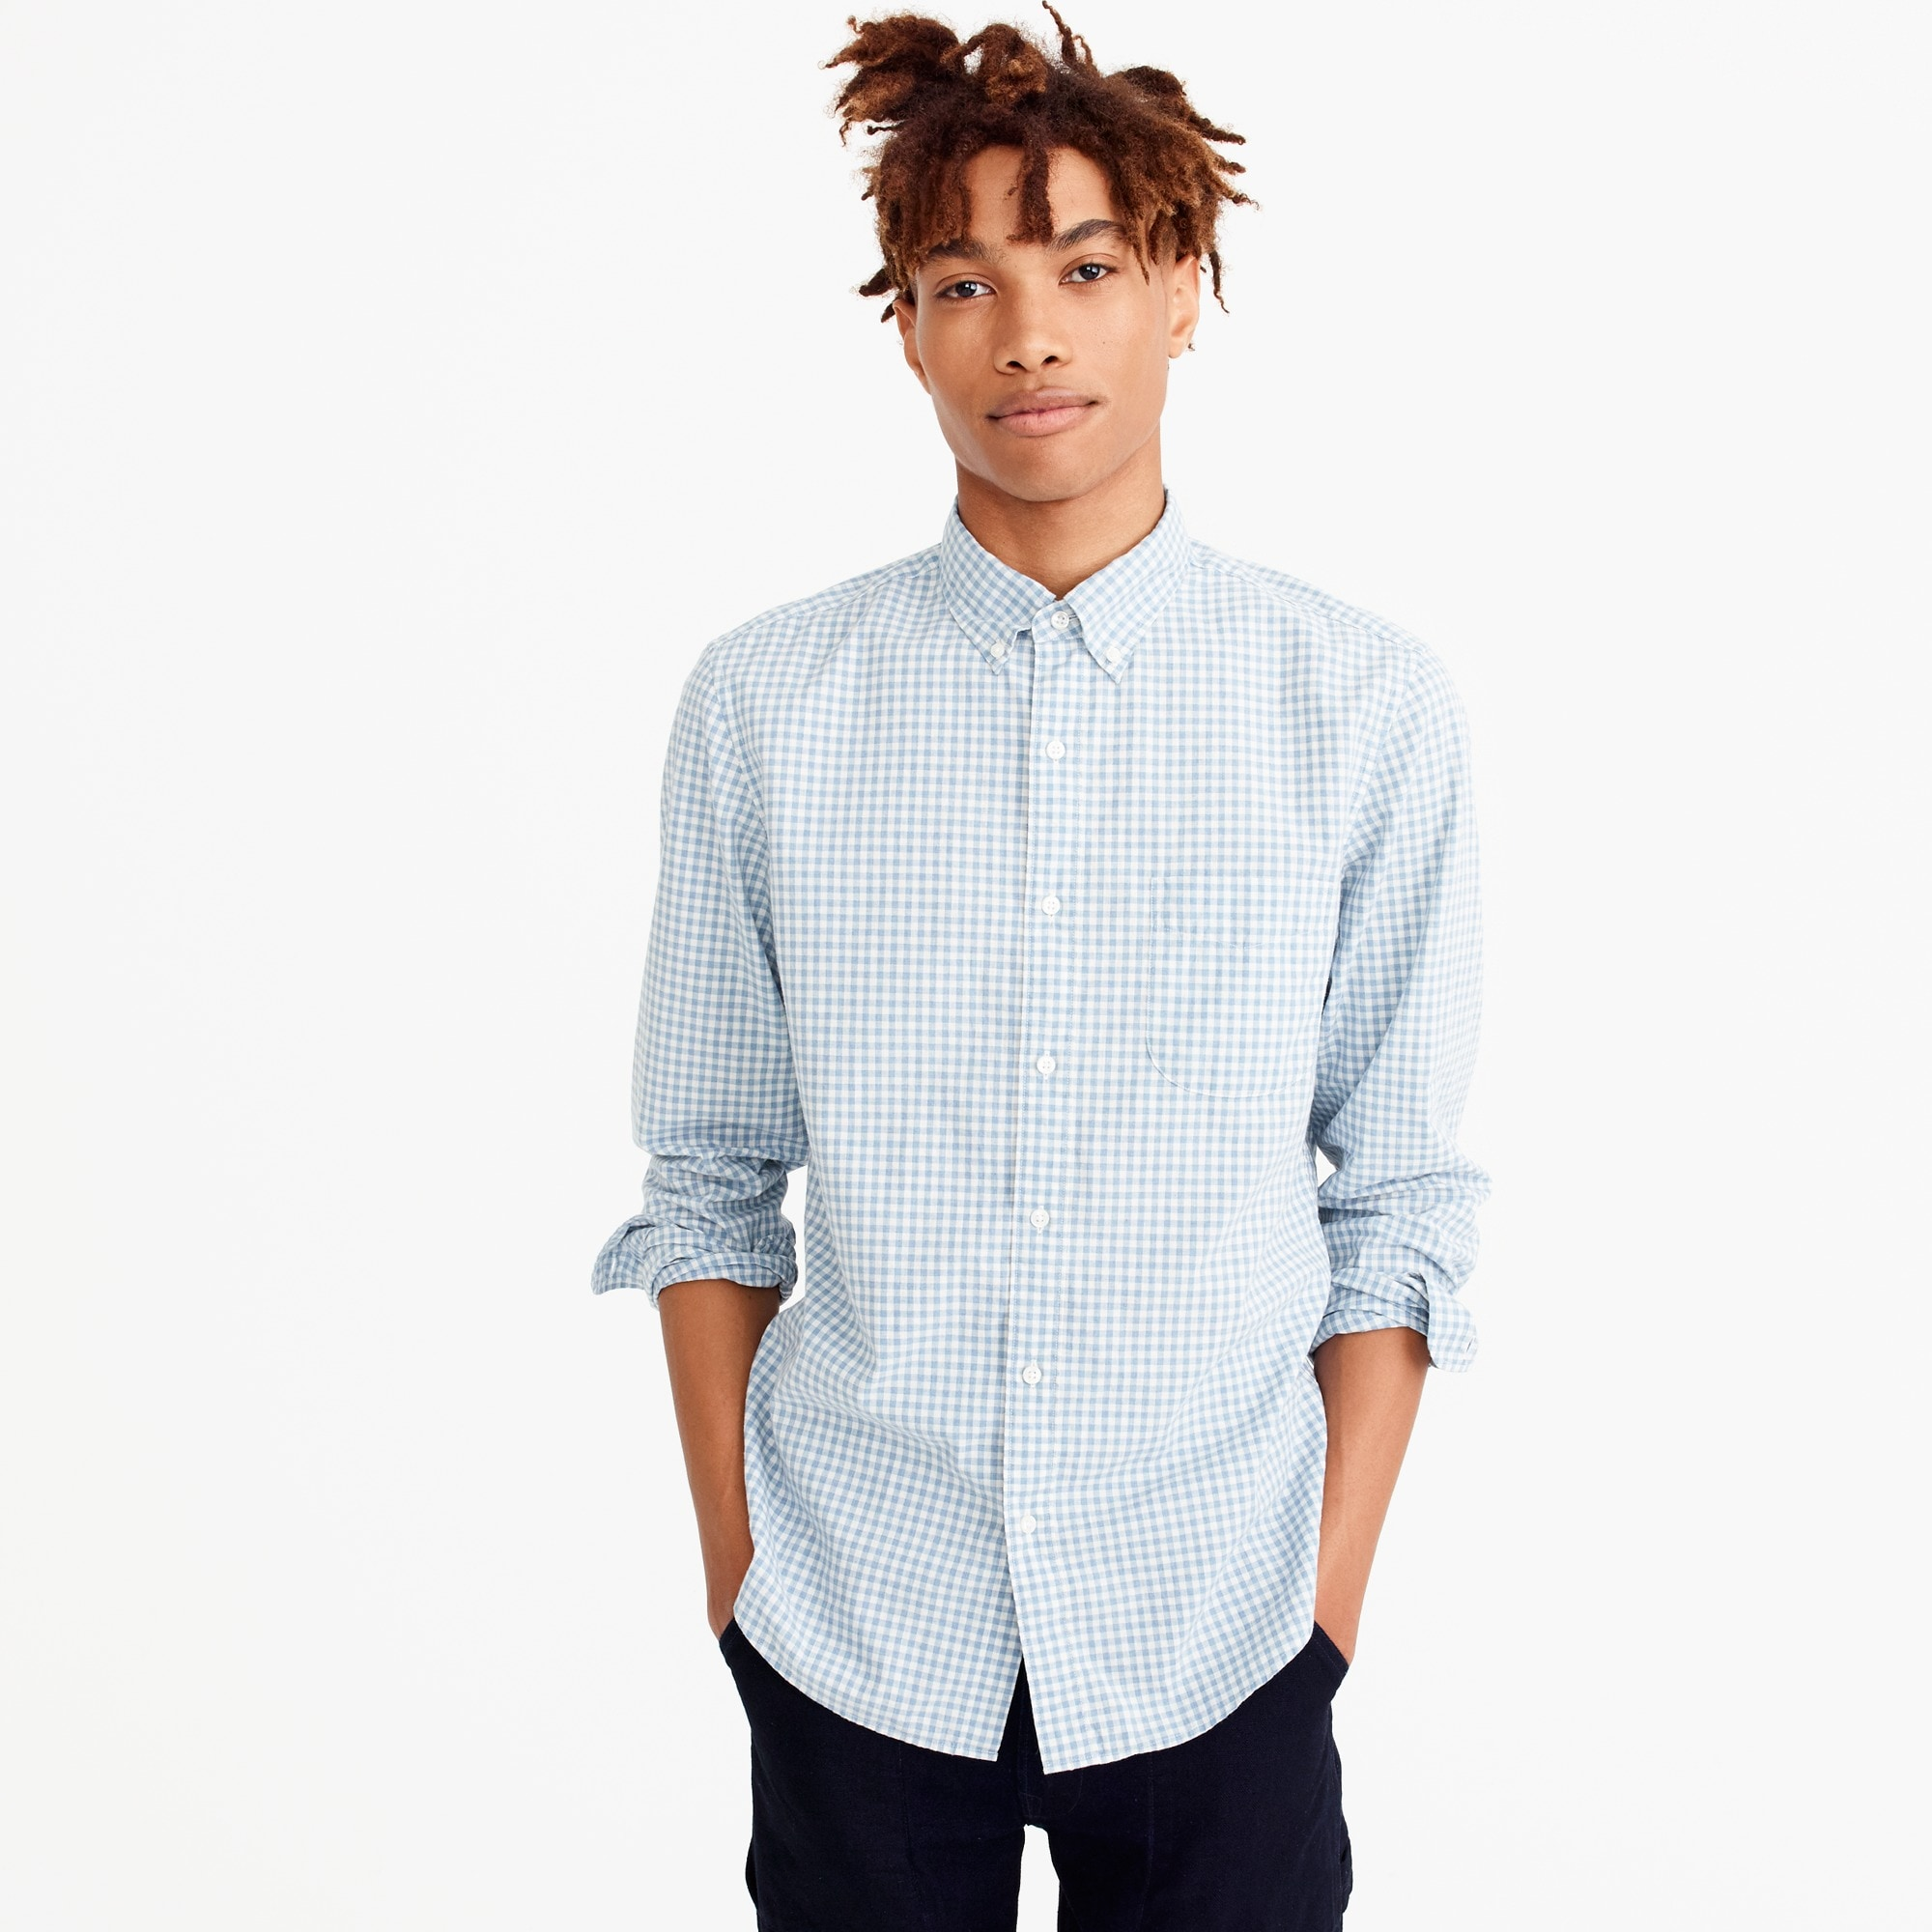 Stretch Secret Wash shirt in blue heather poplin gingham